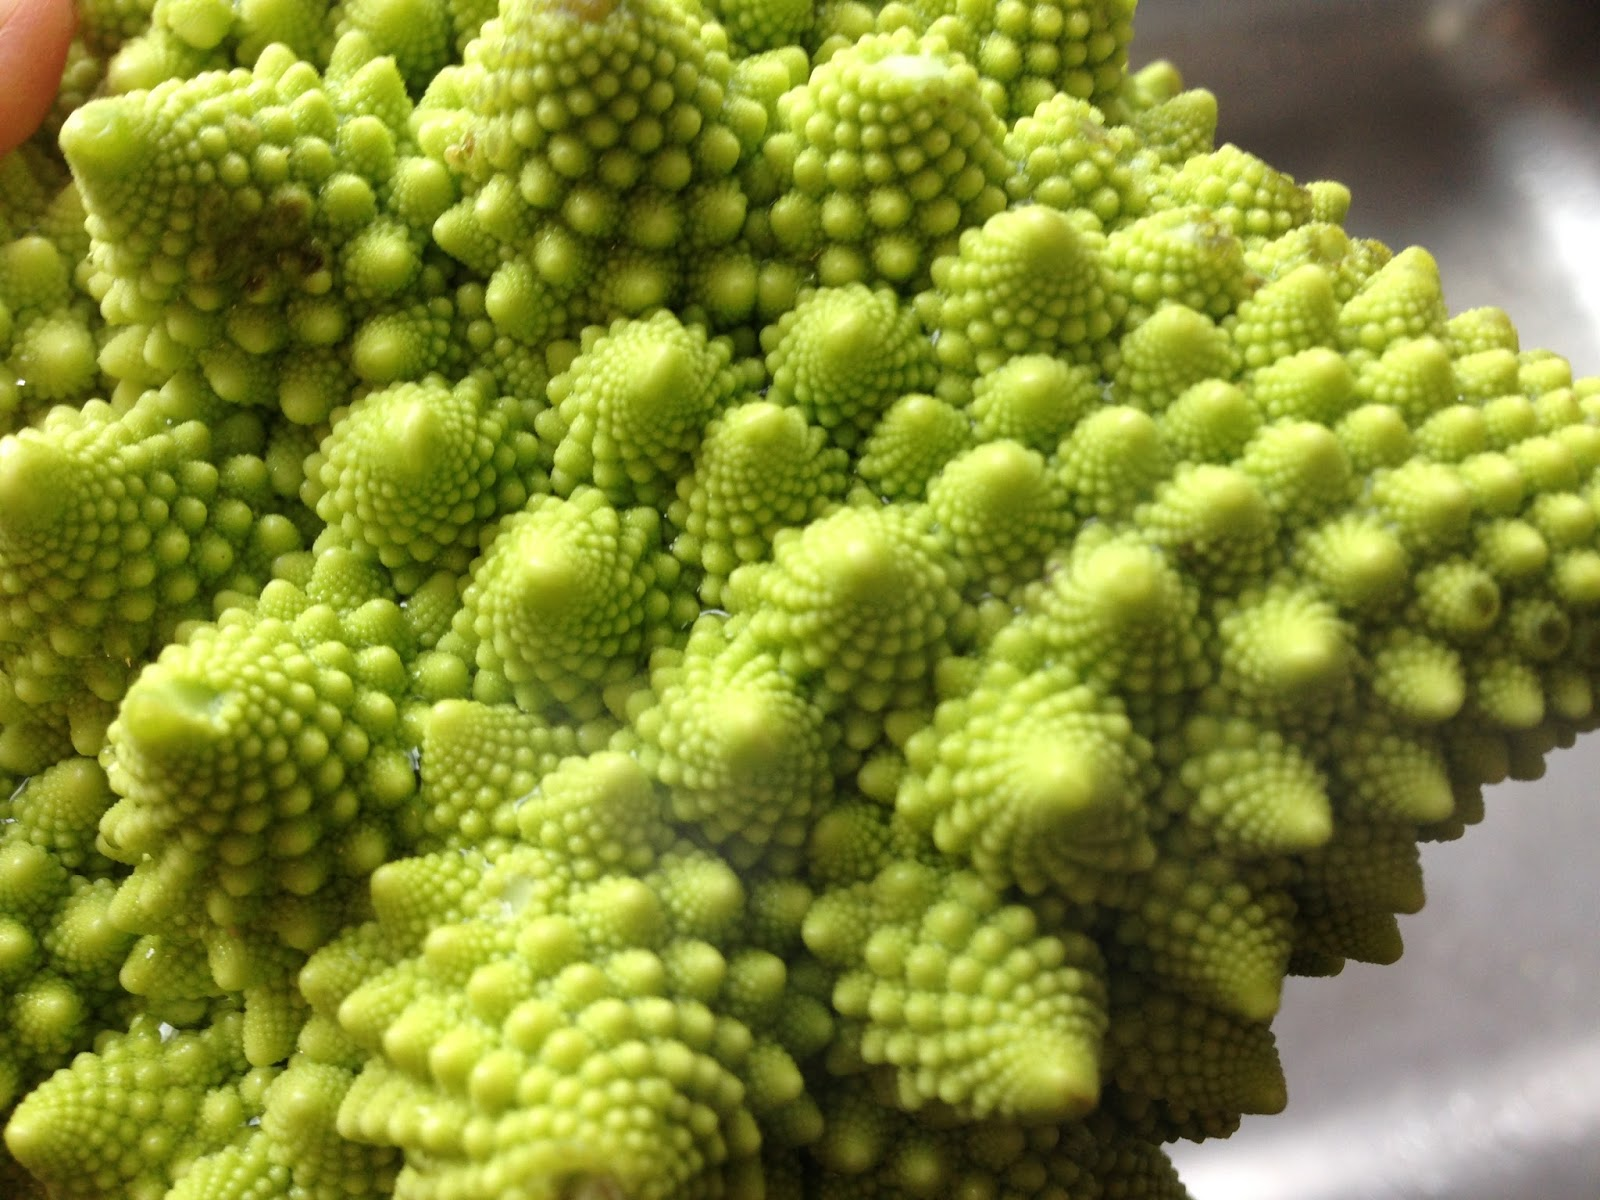 Romanesco Broccoli Can Dogs Eat